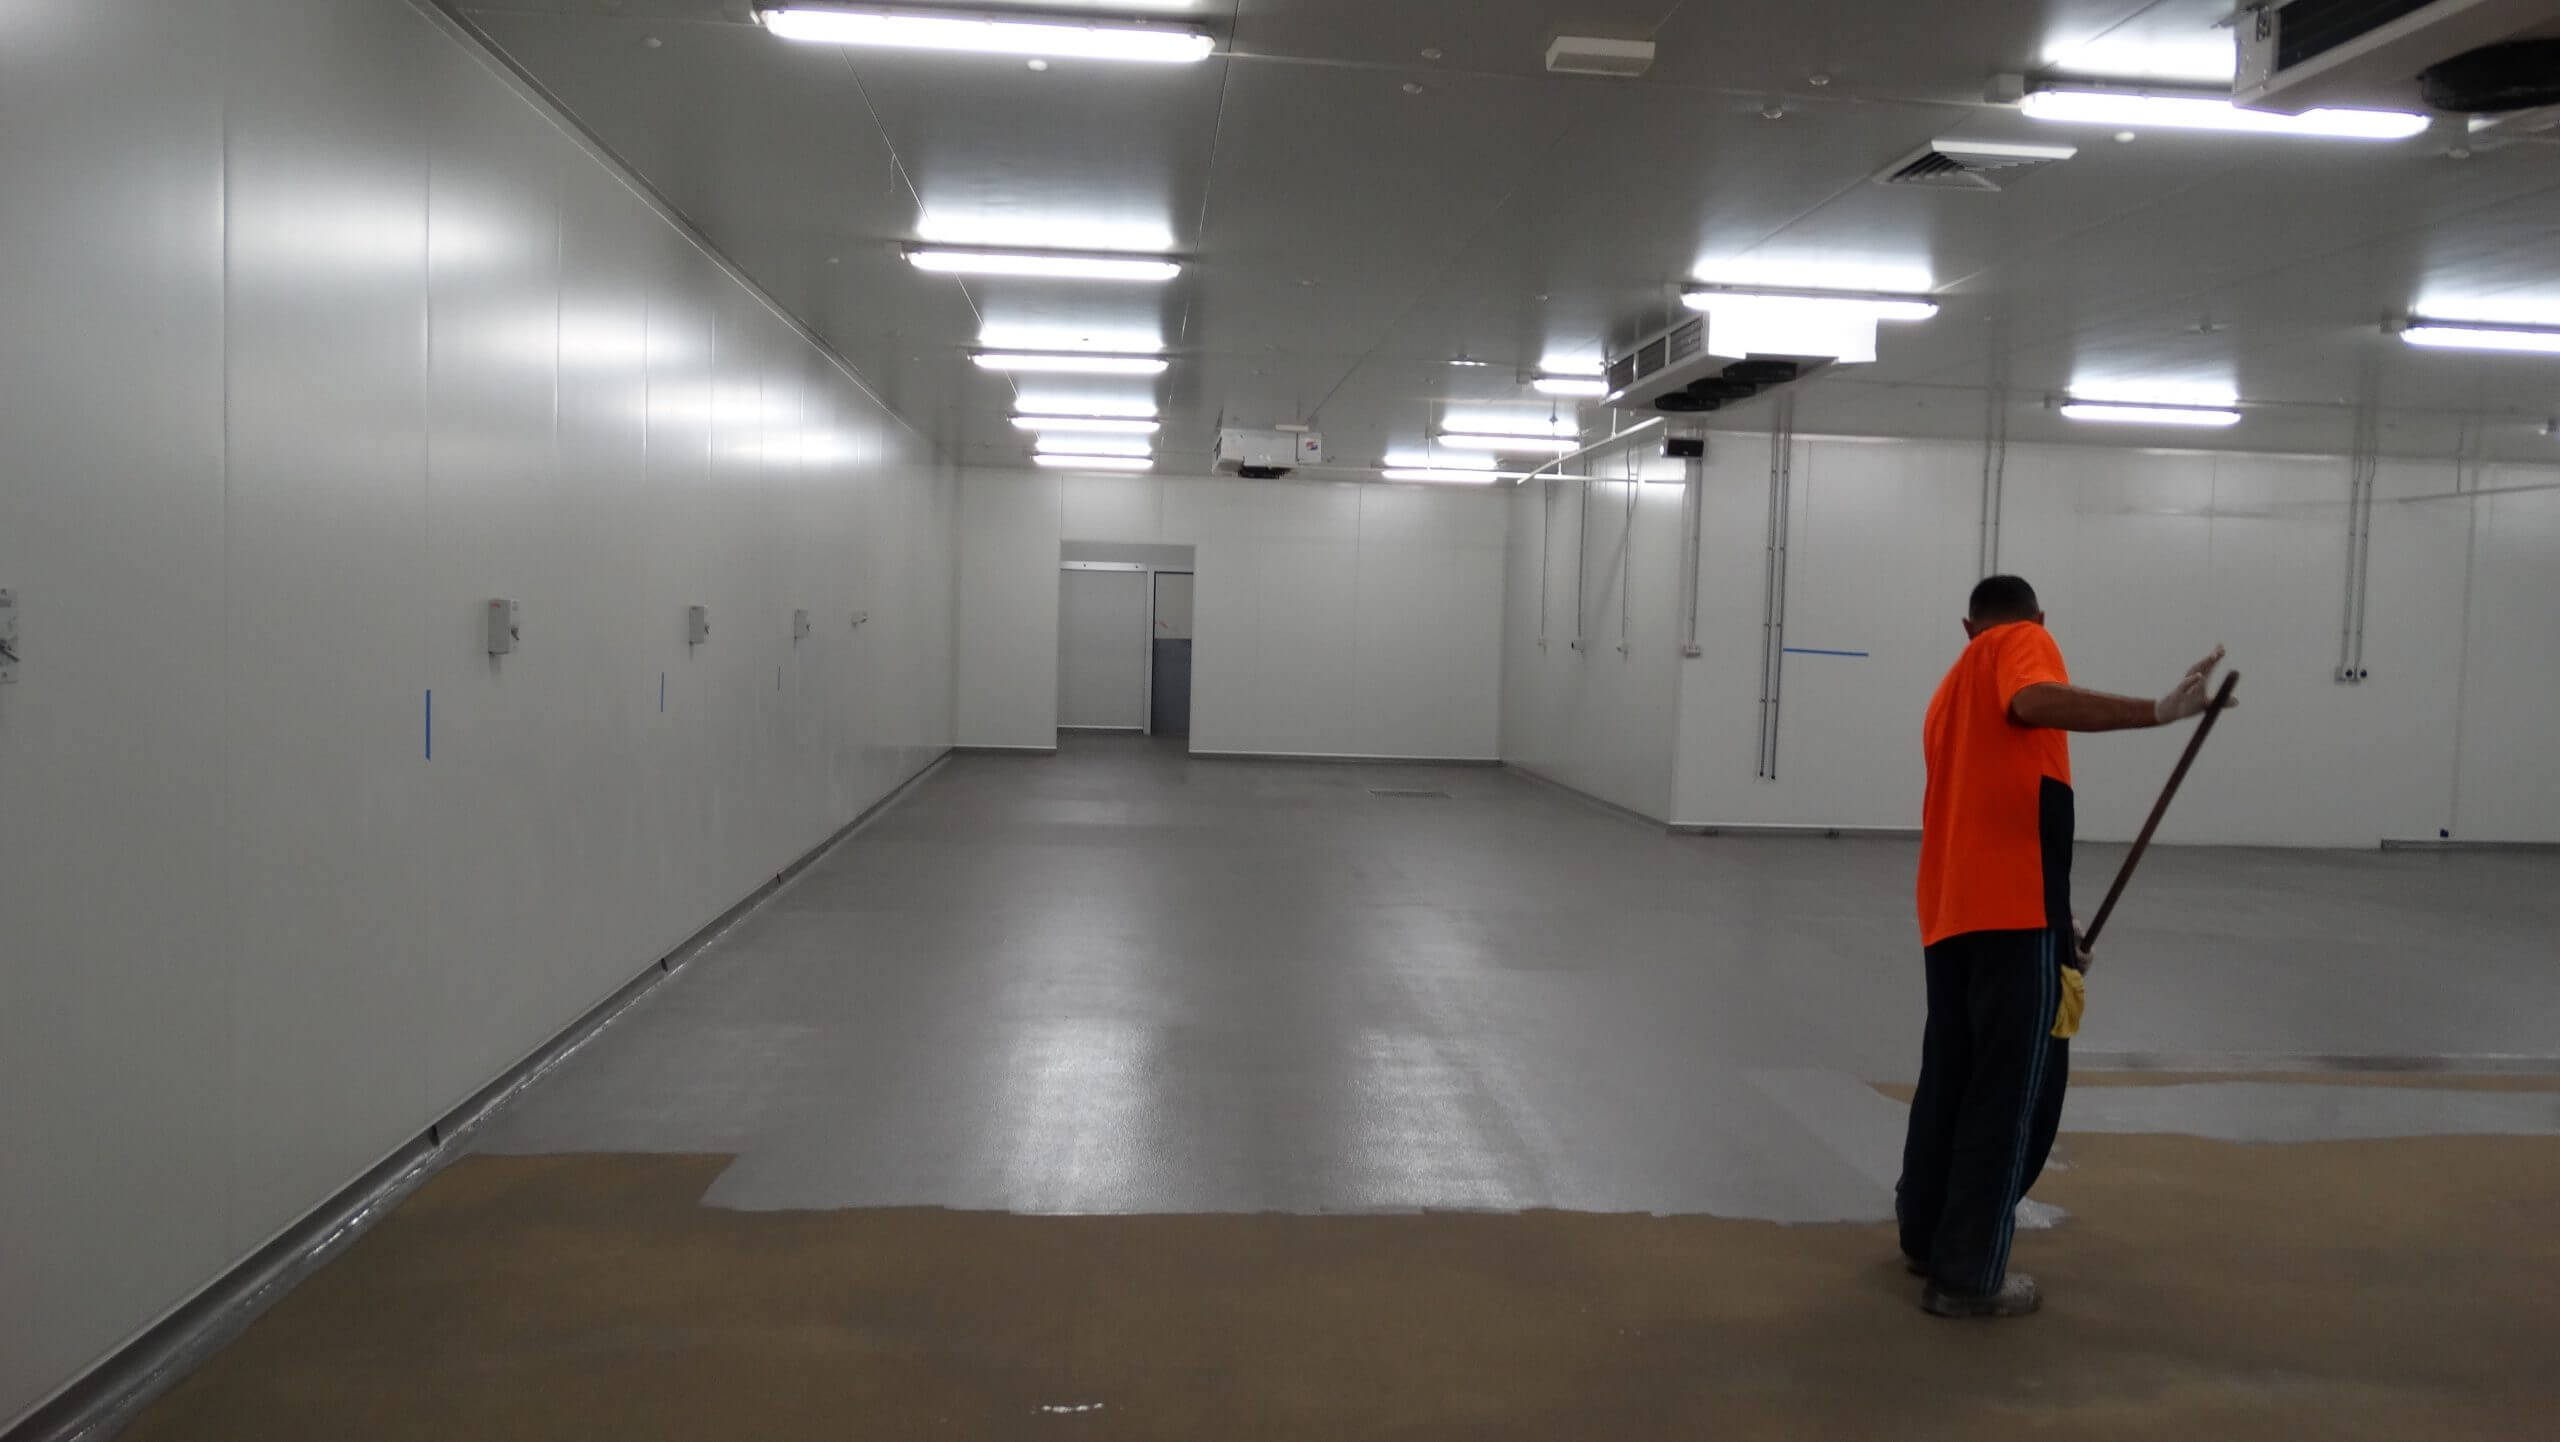 Floor Painting - Flooring Solutions - Remedial Building Services